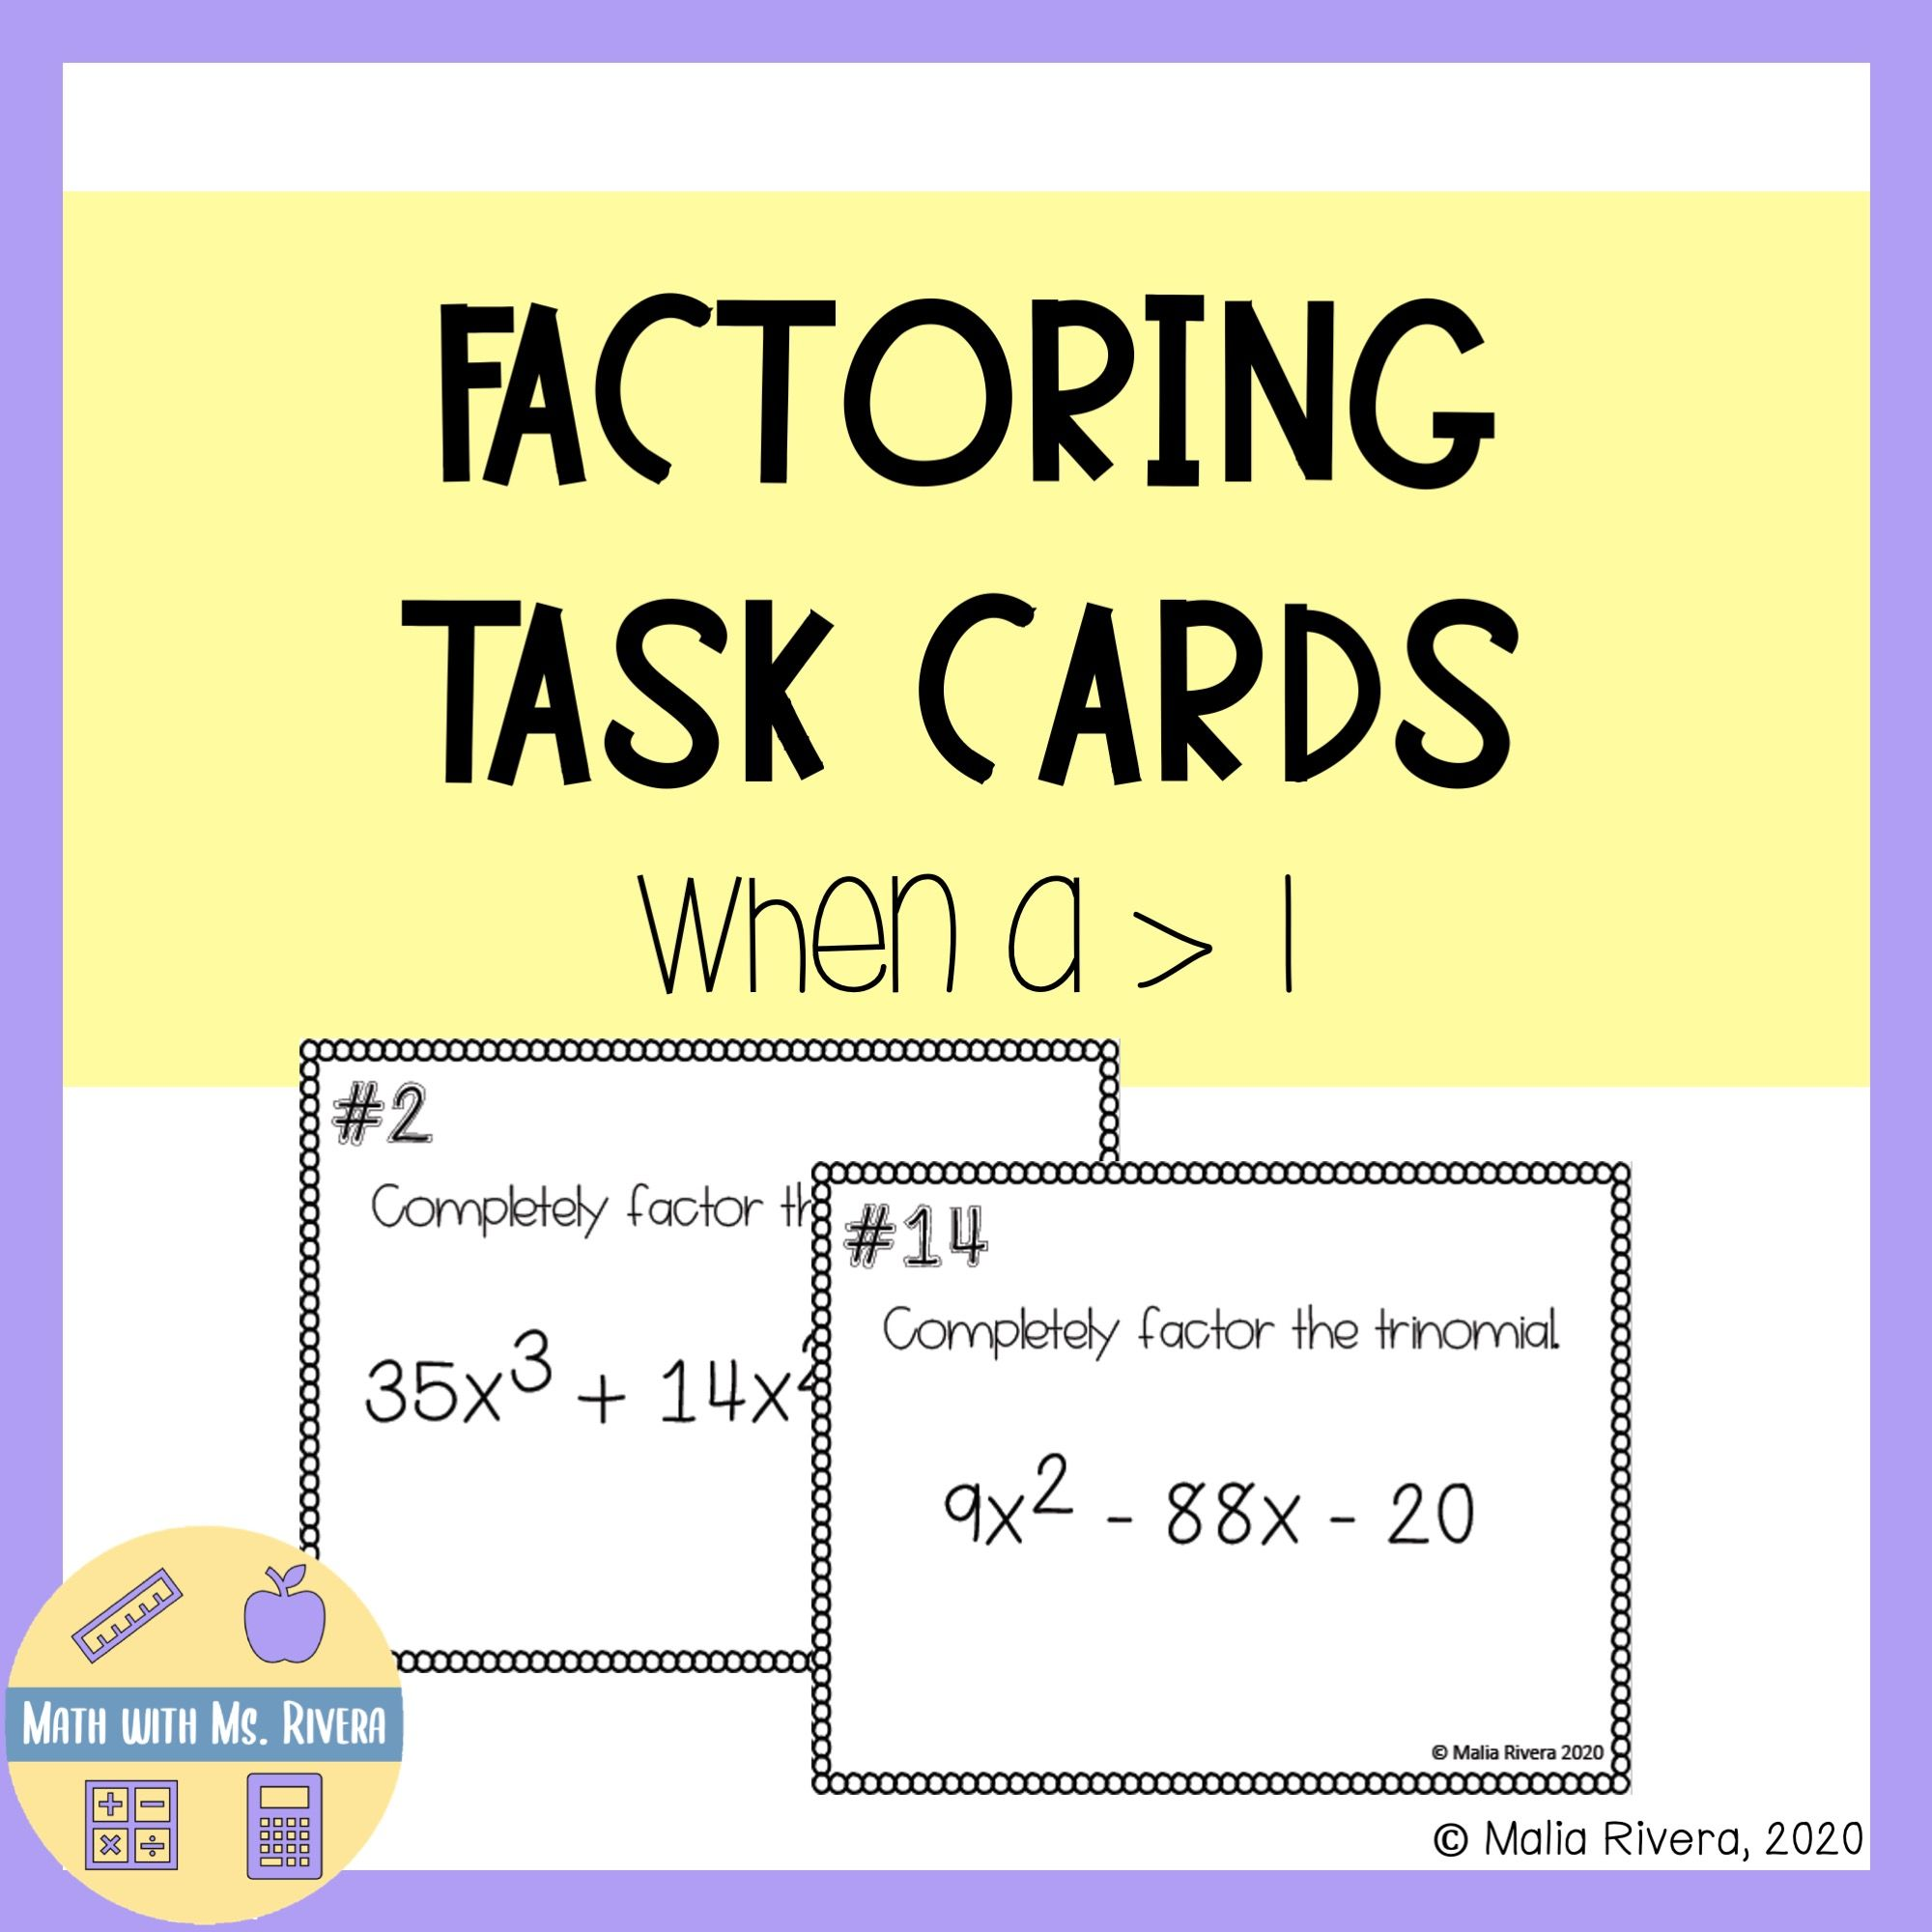 Factoring A Gt 1 Task Cards In